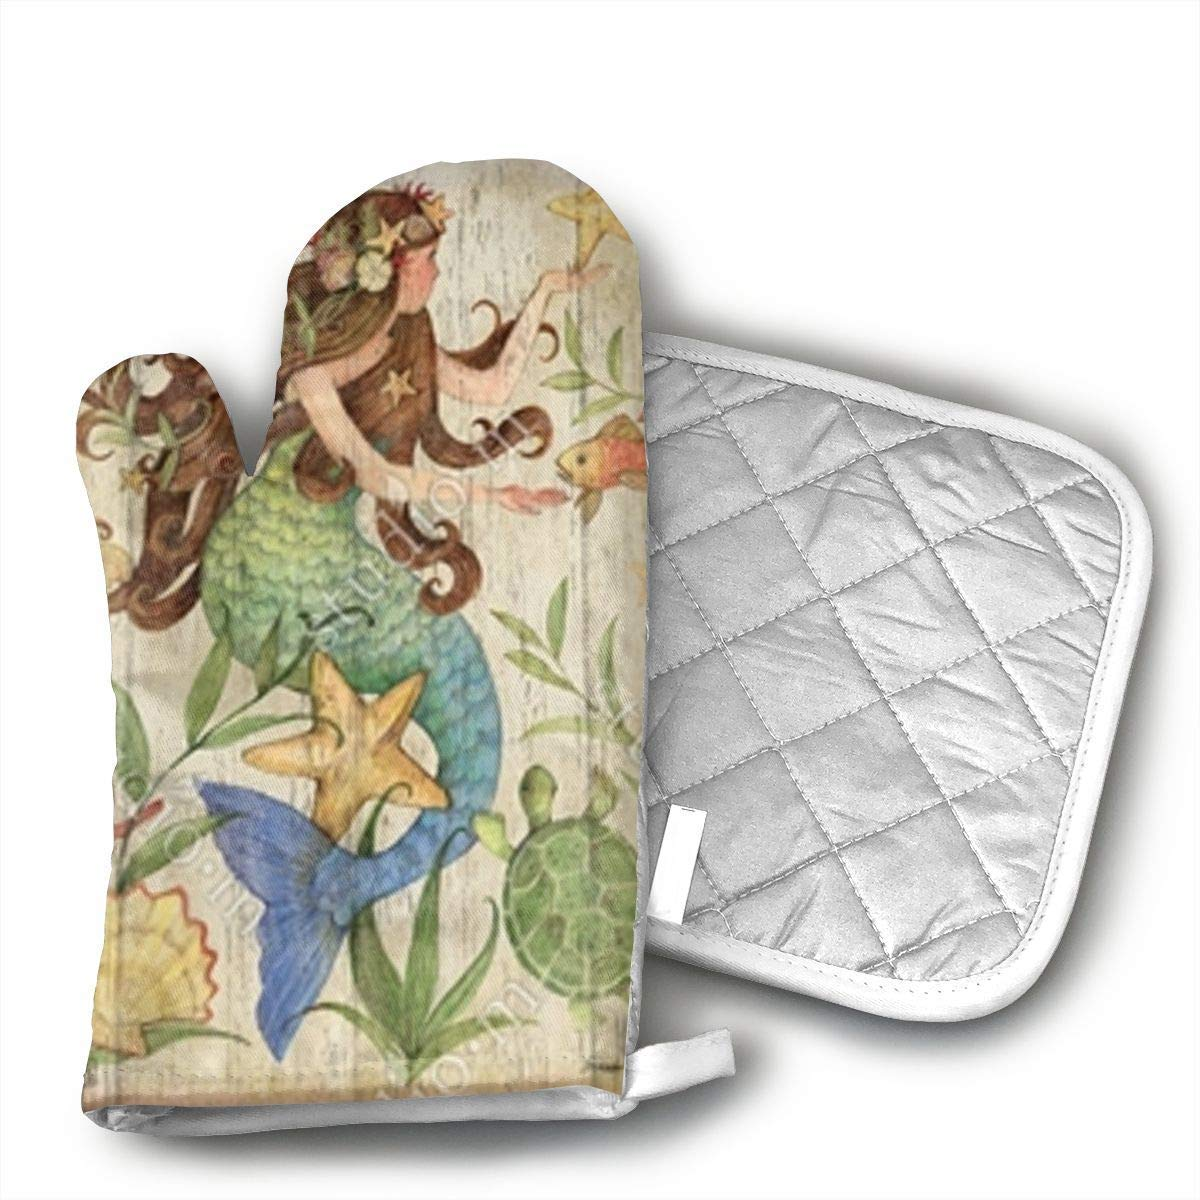 Mermaid Yourtablecloth Set of Oven Mitt and Pot Holder Or Oven Gloves-100% Cotton, High Heat Resistance, Superior Protection & Comfort¨CElegant Design